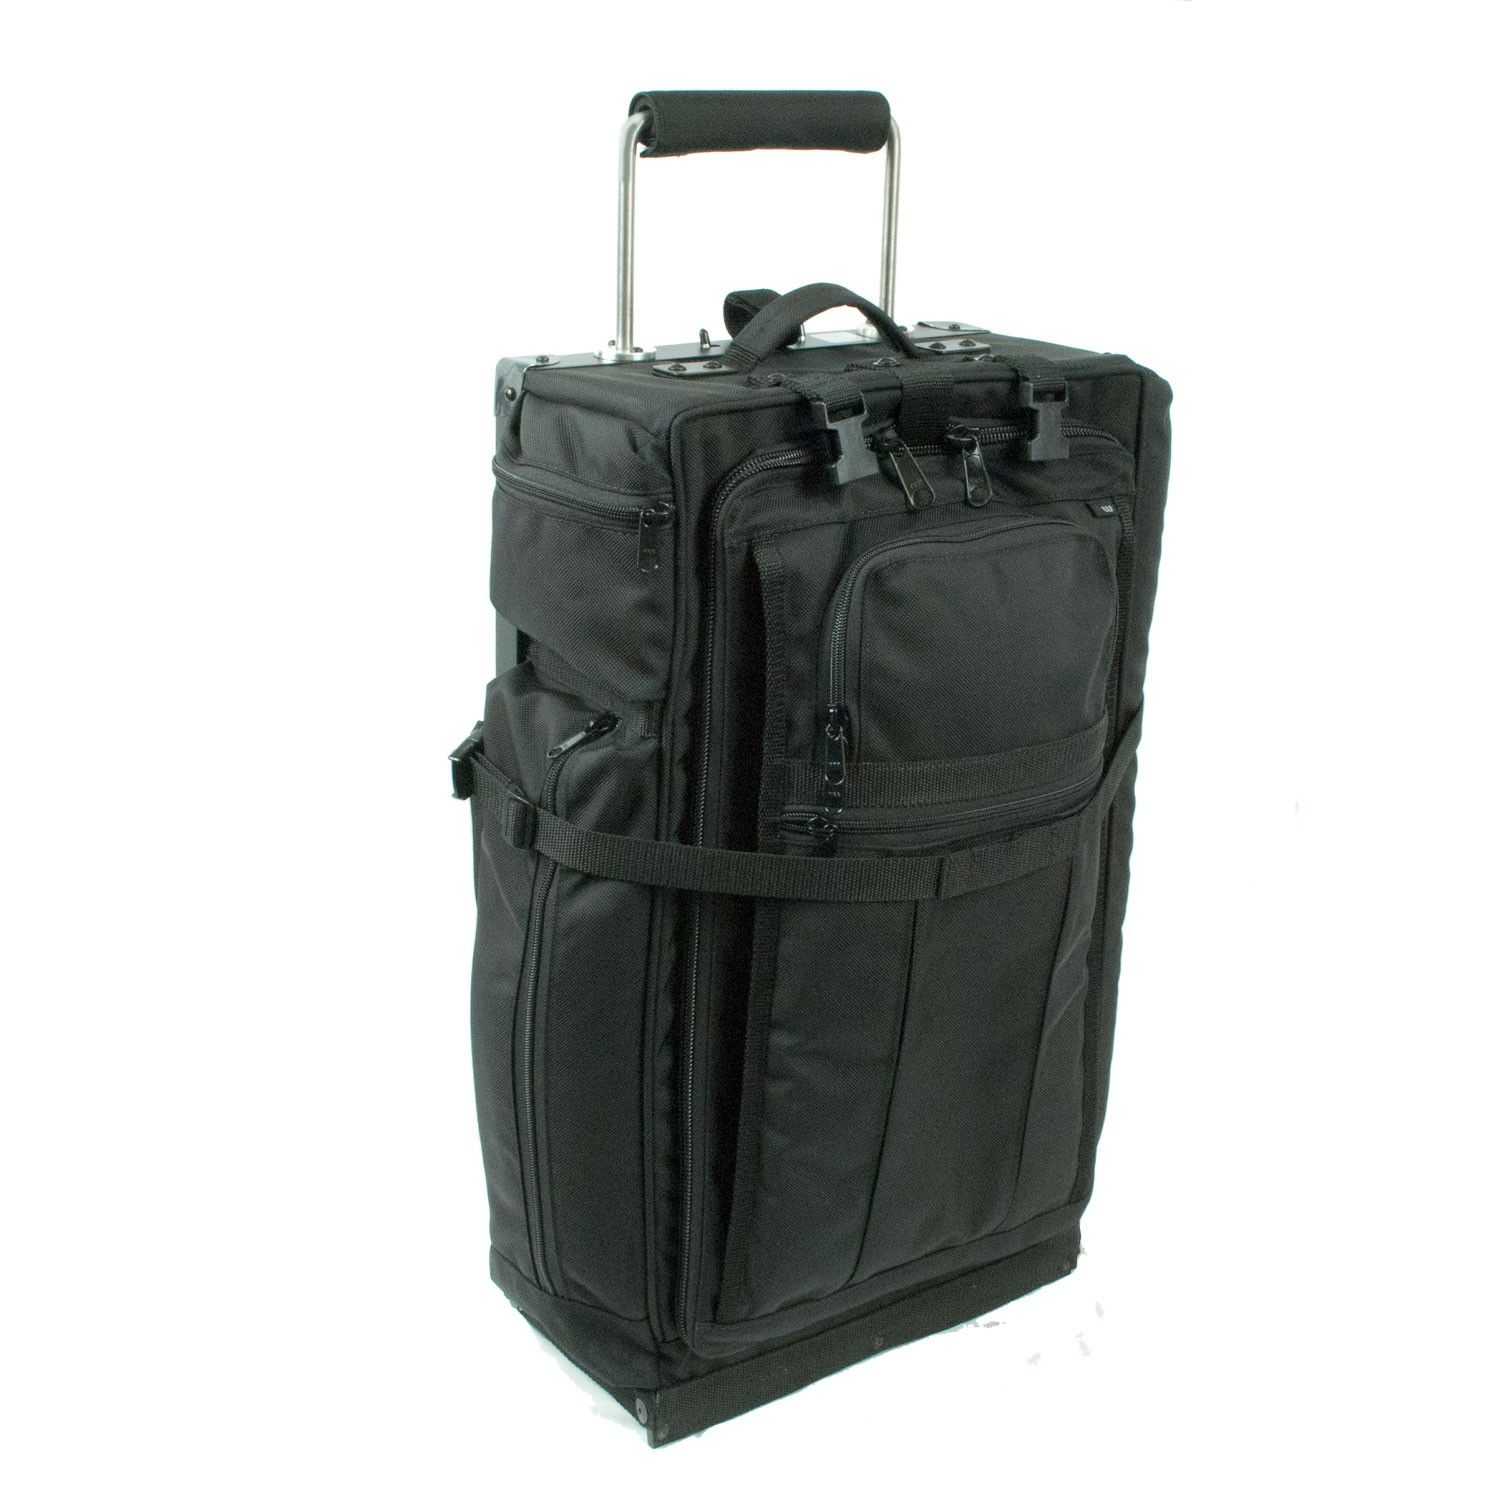 Luggage Works Stealth 26